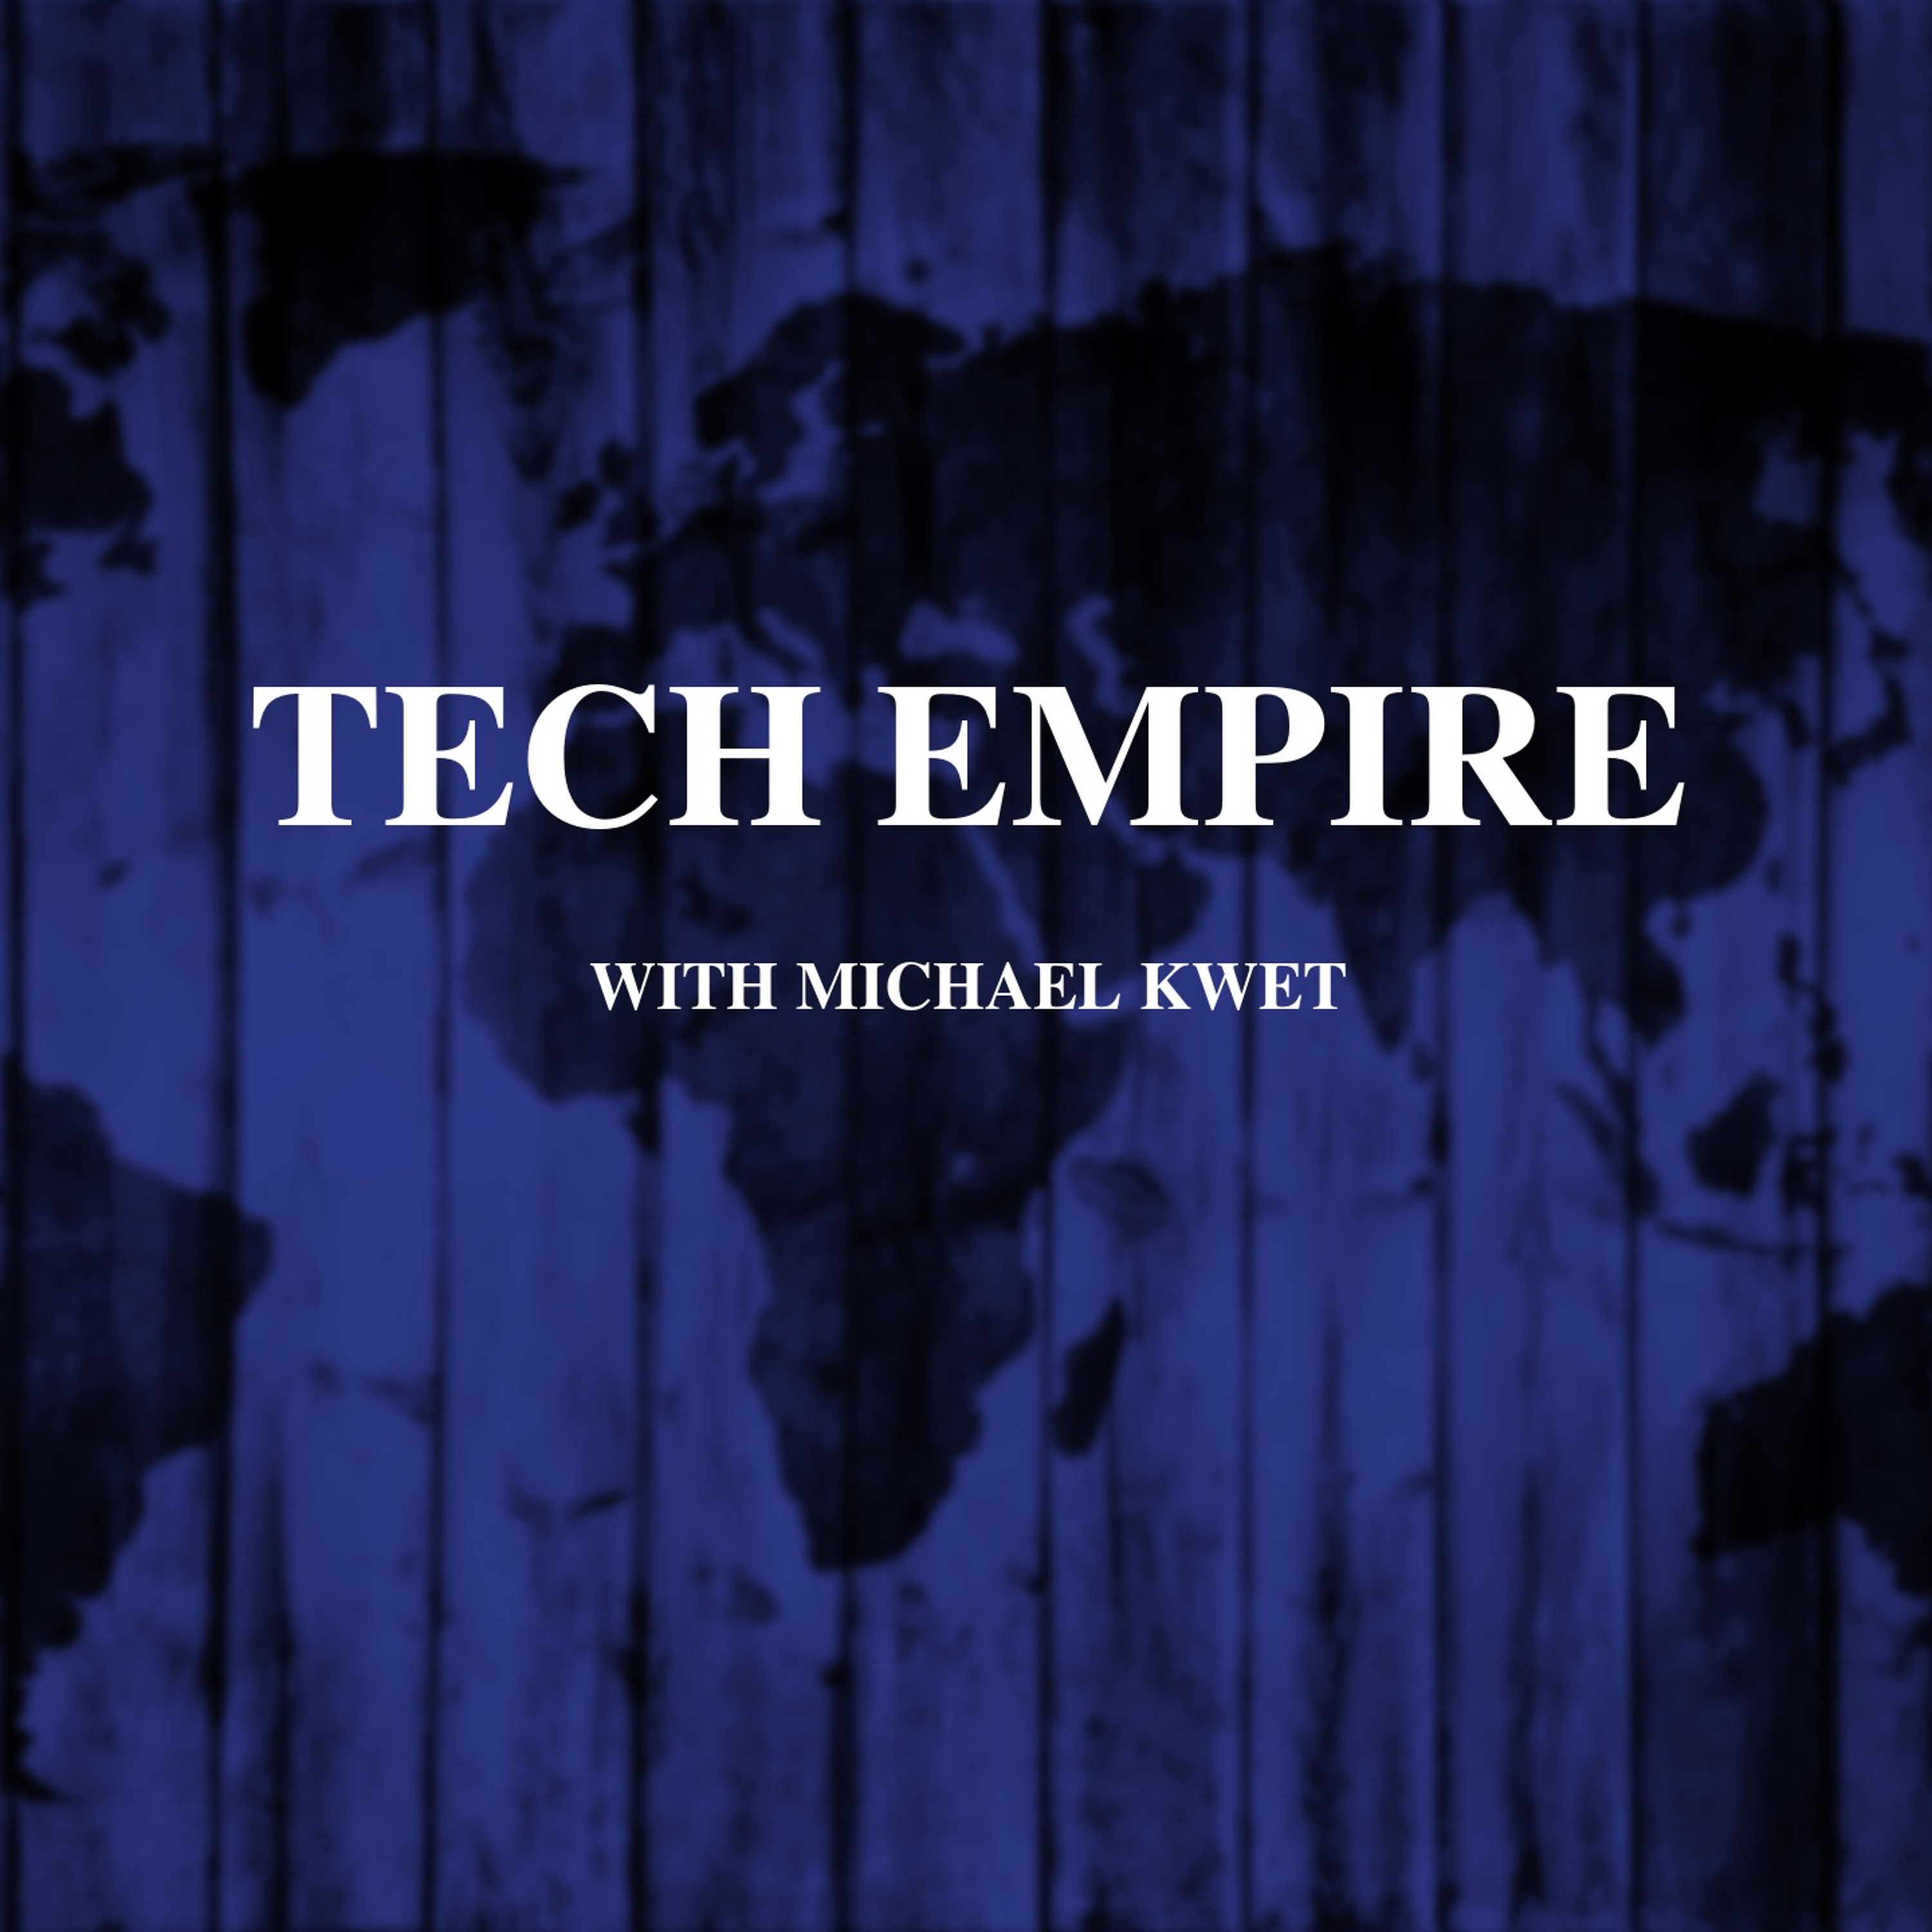 The Black Box Society, E-Education and Big Tech Regulation with Frank Pasquale